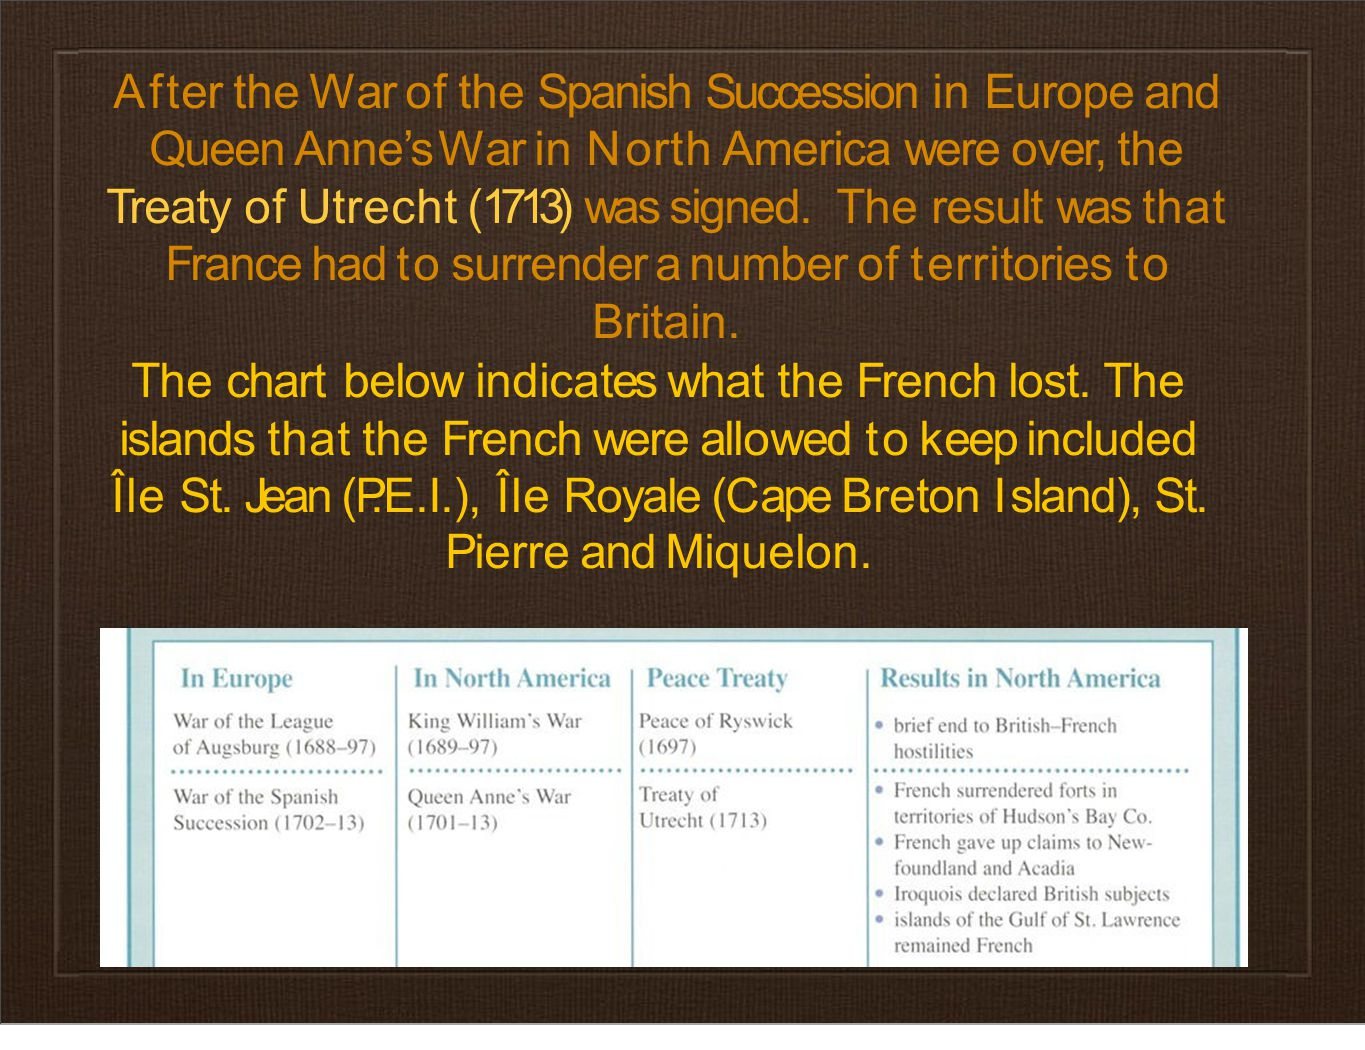 After the War of the Spanish Succession in Europe and Queen Anne's War in North America were over, the Treaty of Utrecht (1713) was signed.The result